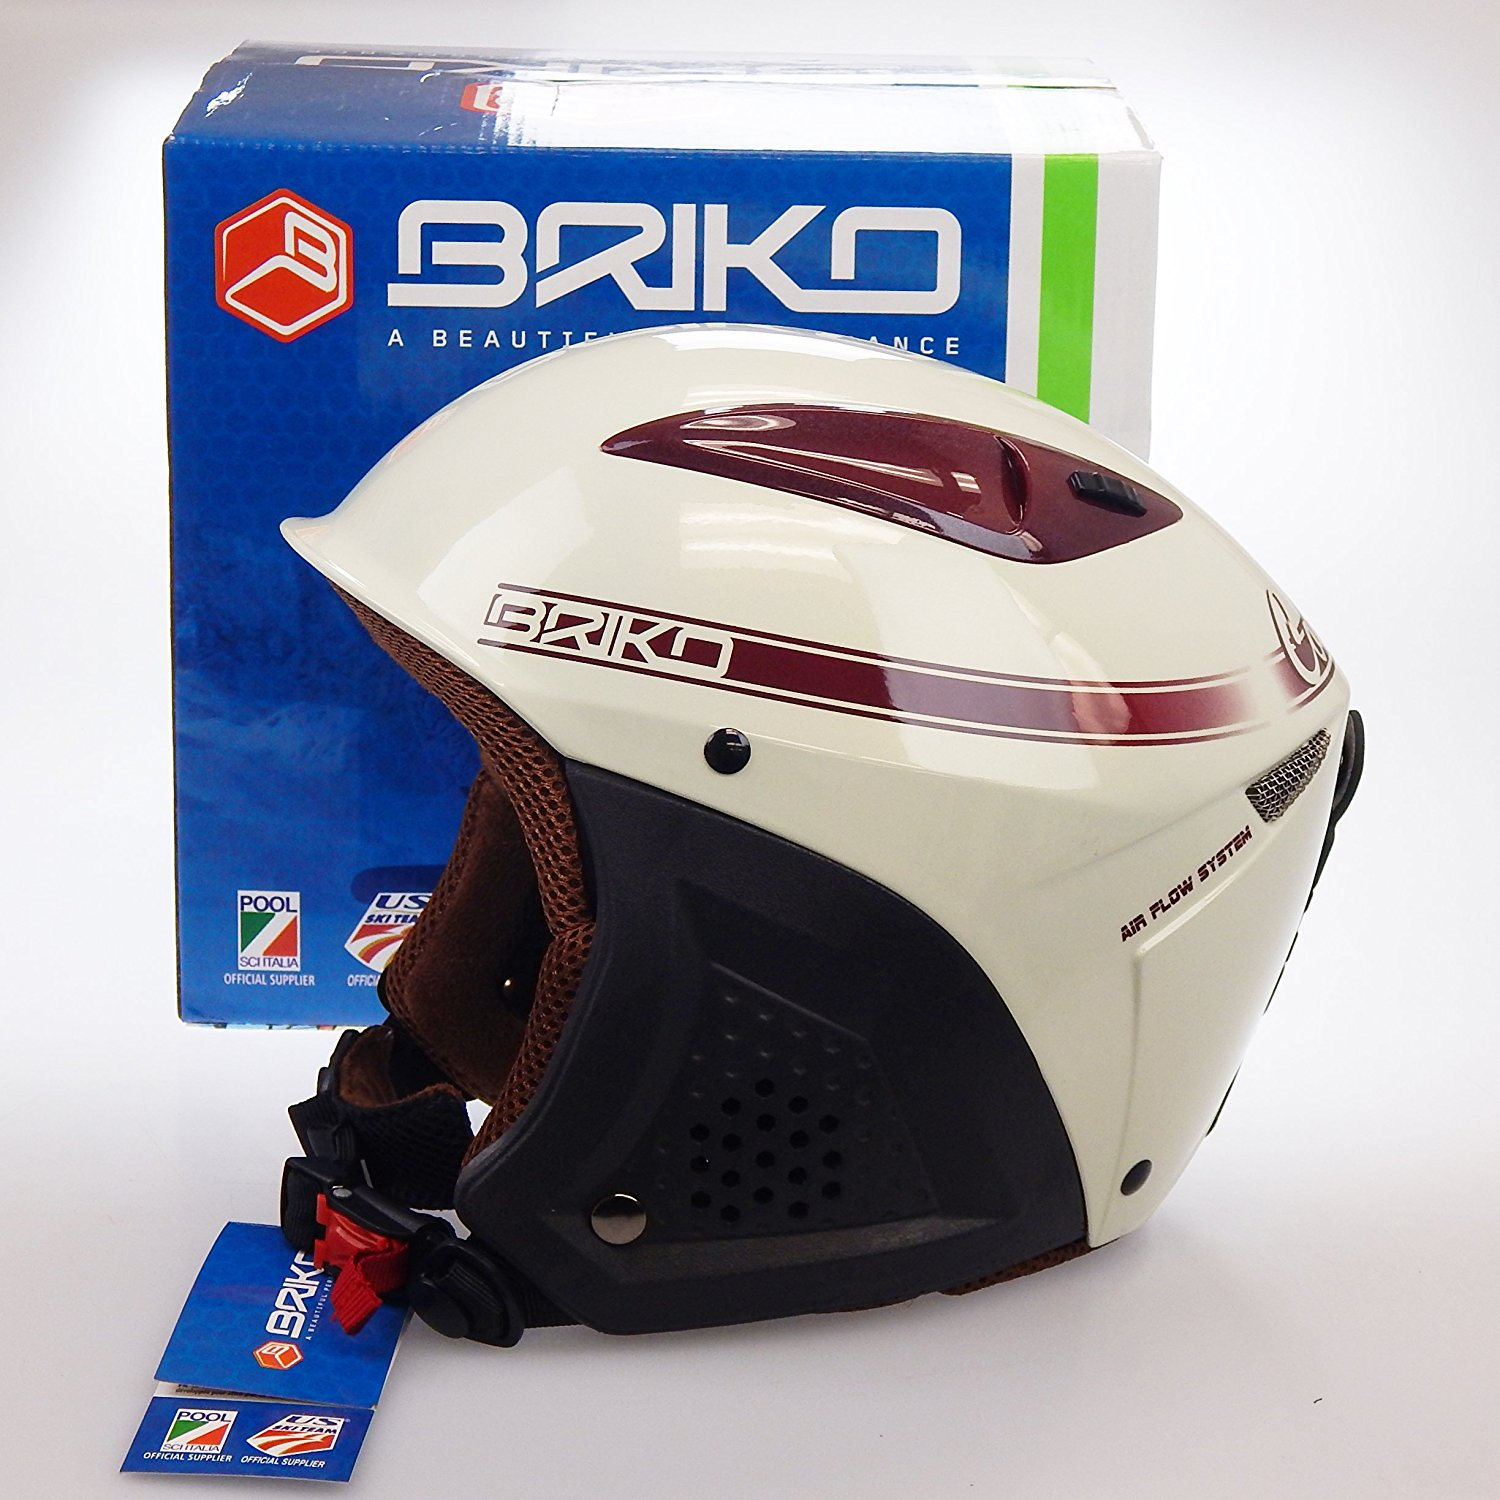 Briko Colorado Helmet Champagne Size: 54CM by SOGEN SPORTS INC.